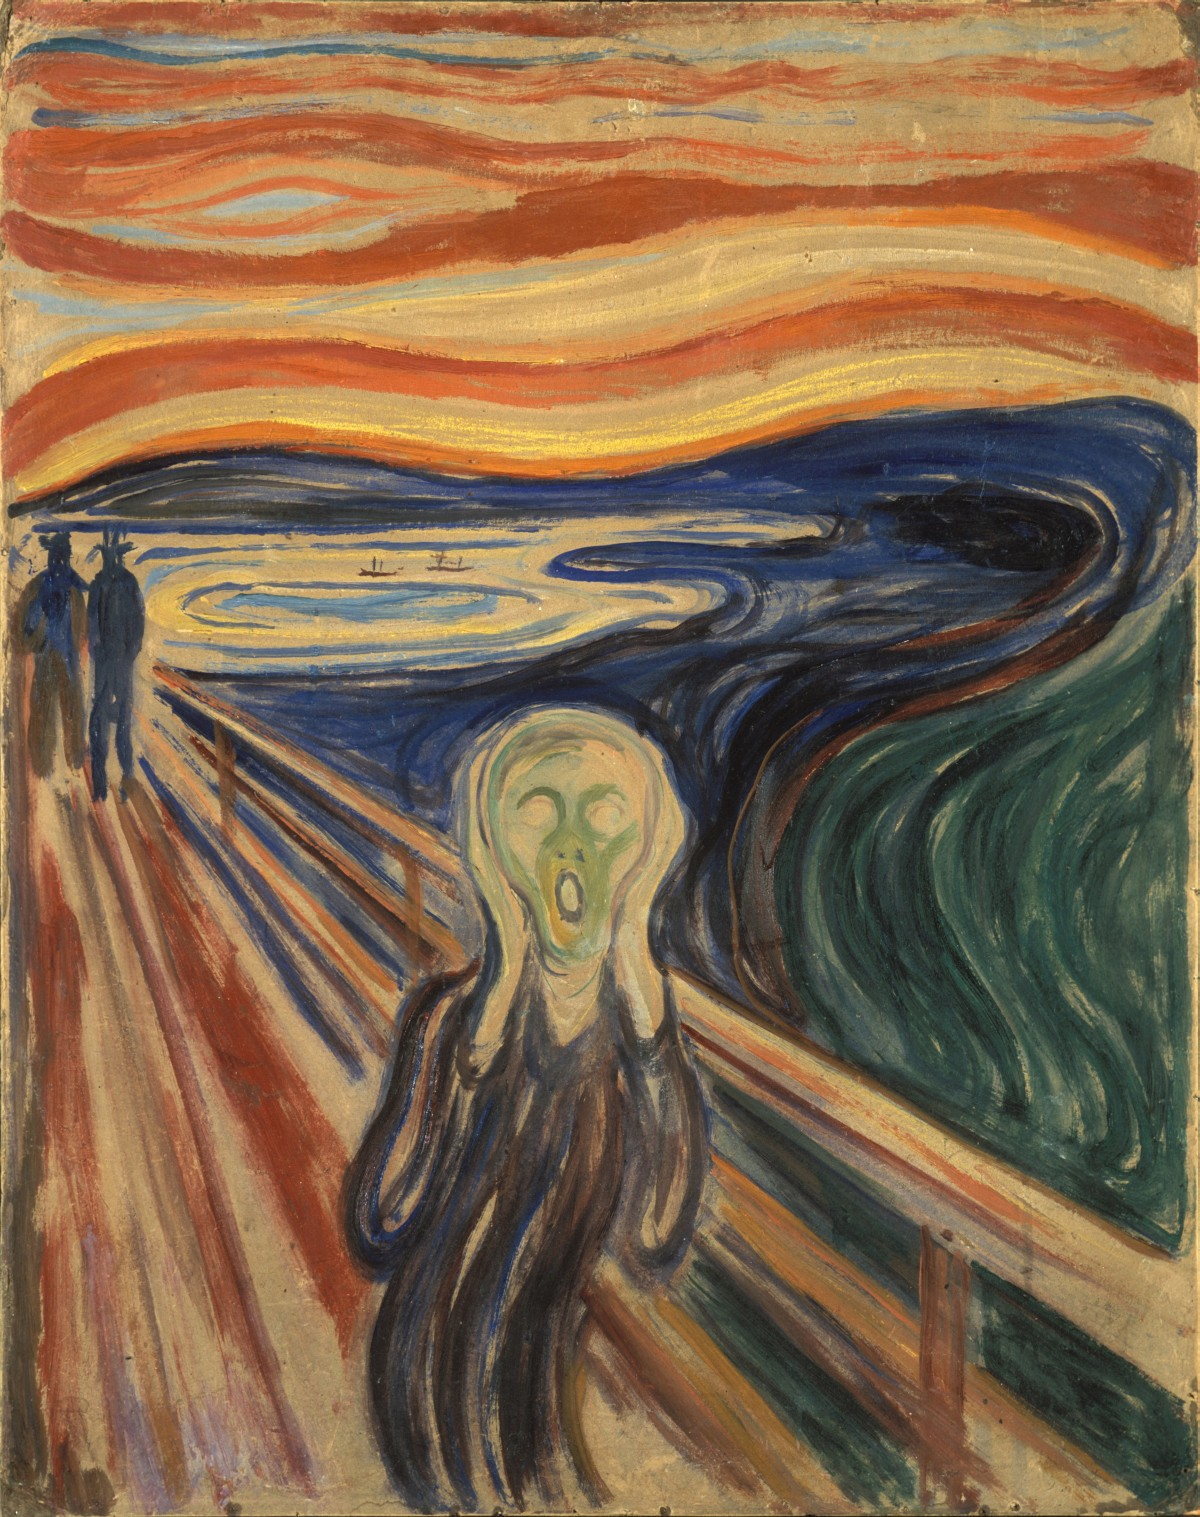 Cult stories Edvard Munch The Scream painting art modern man anxiety Norway